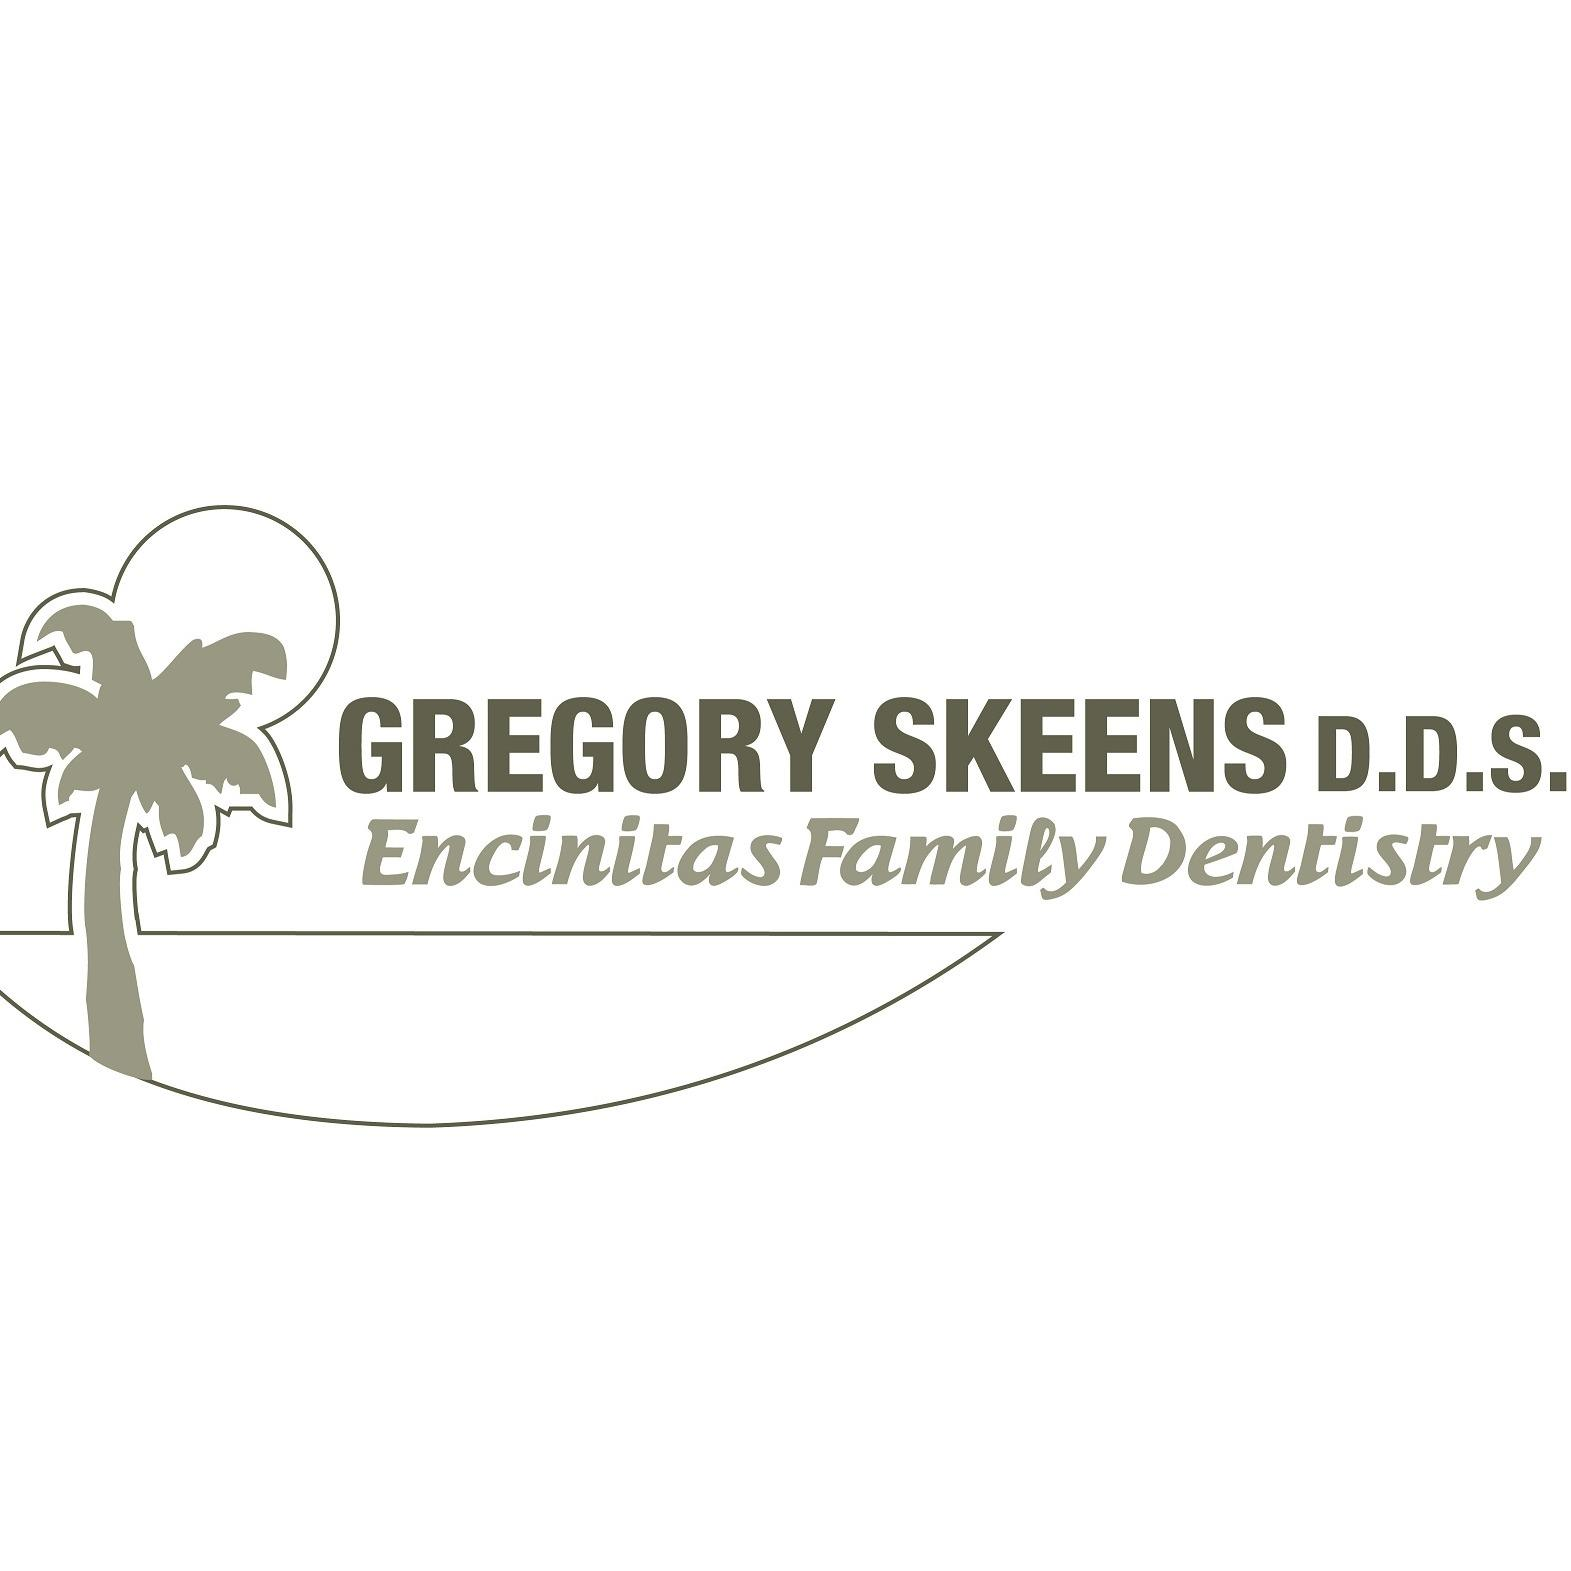 Gregory W. Skeens Jr. DDS